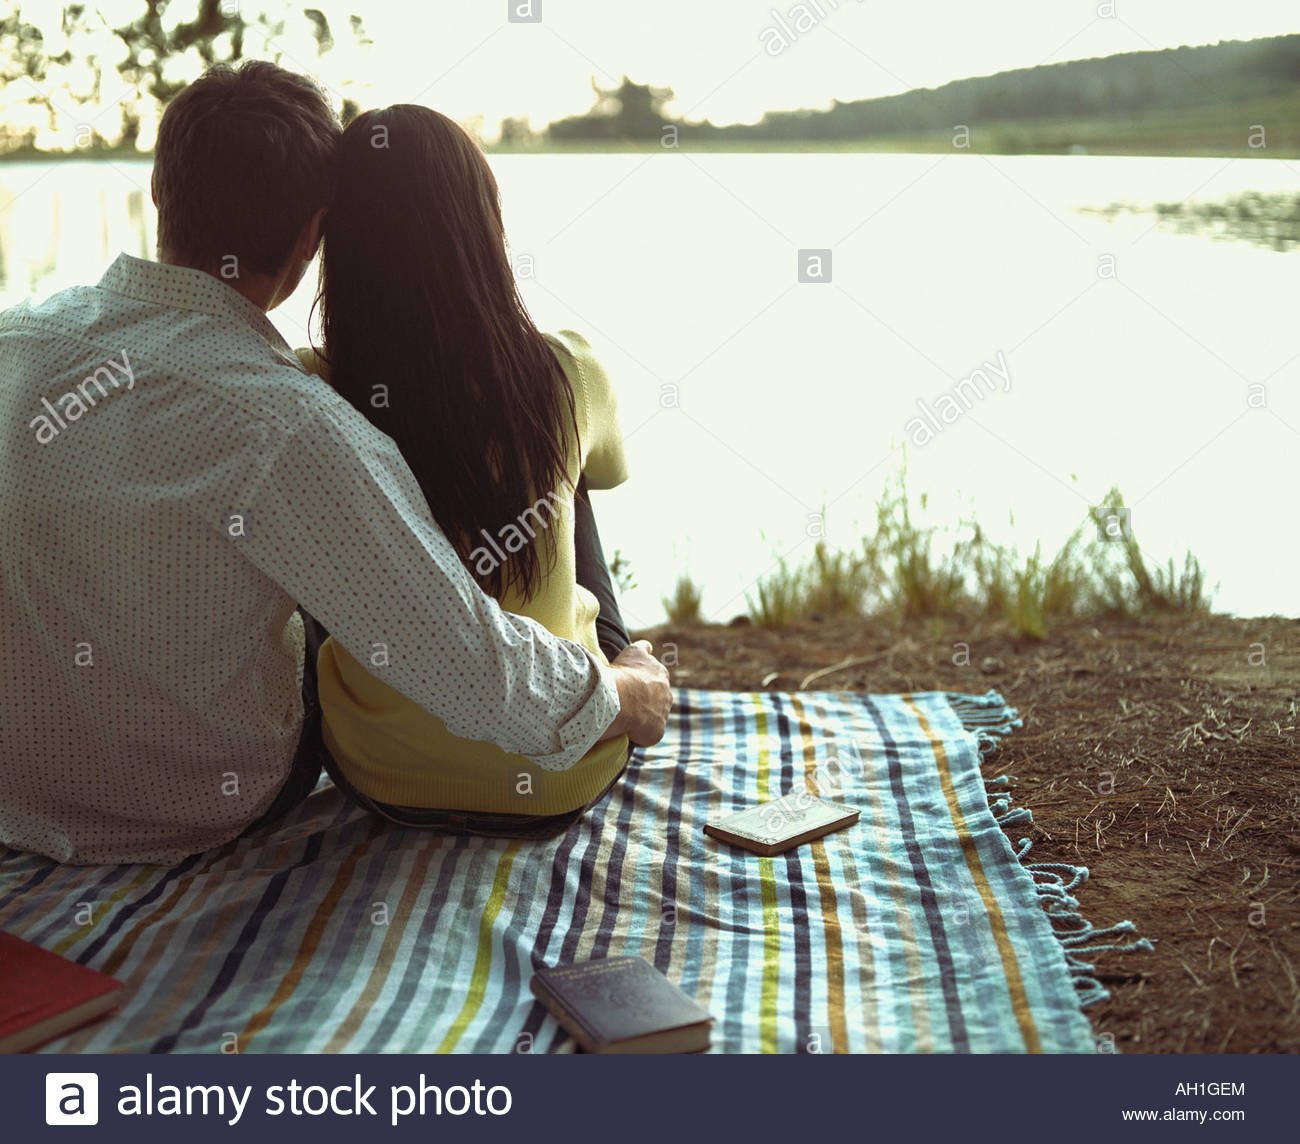 A couple relaxing by a lake - Stock Image